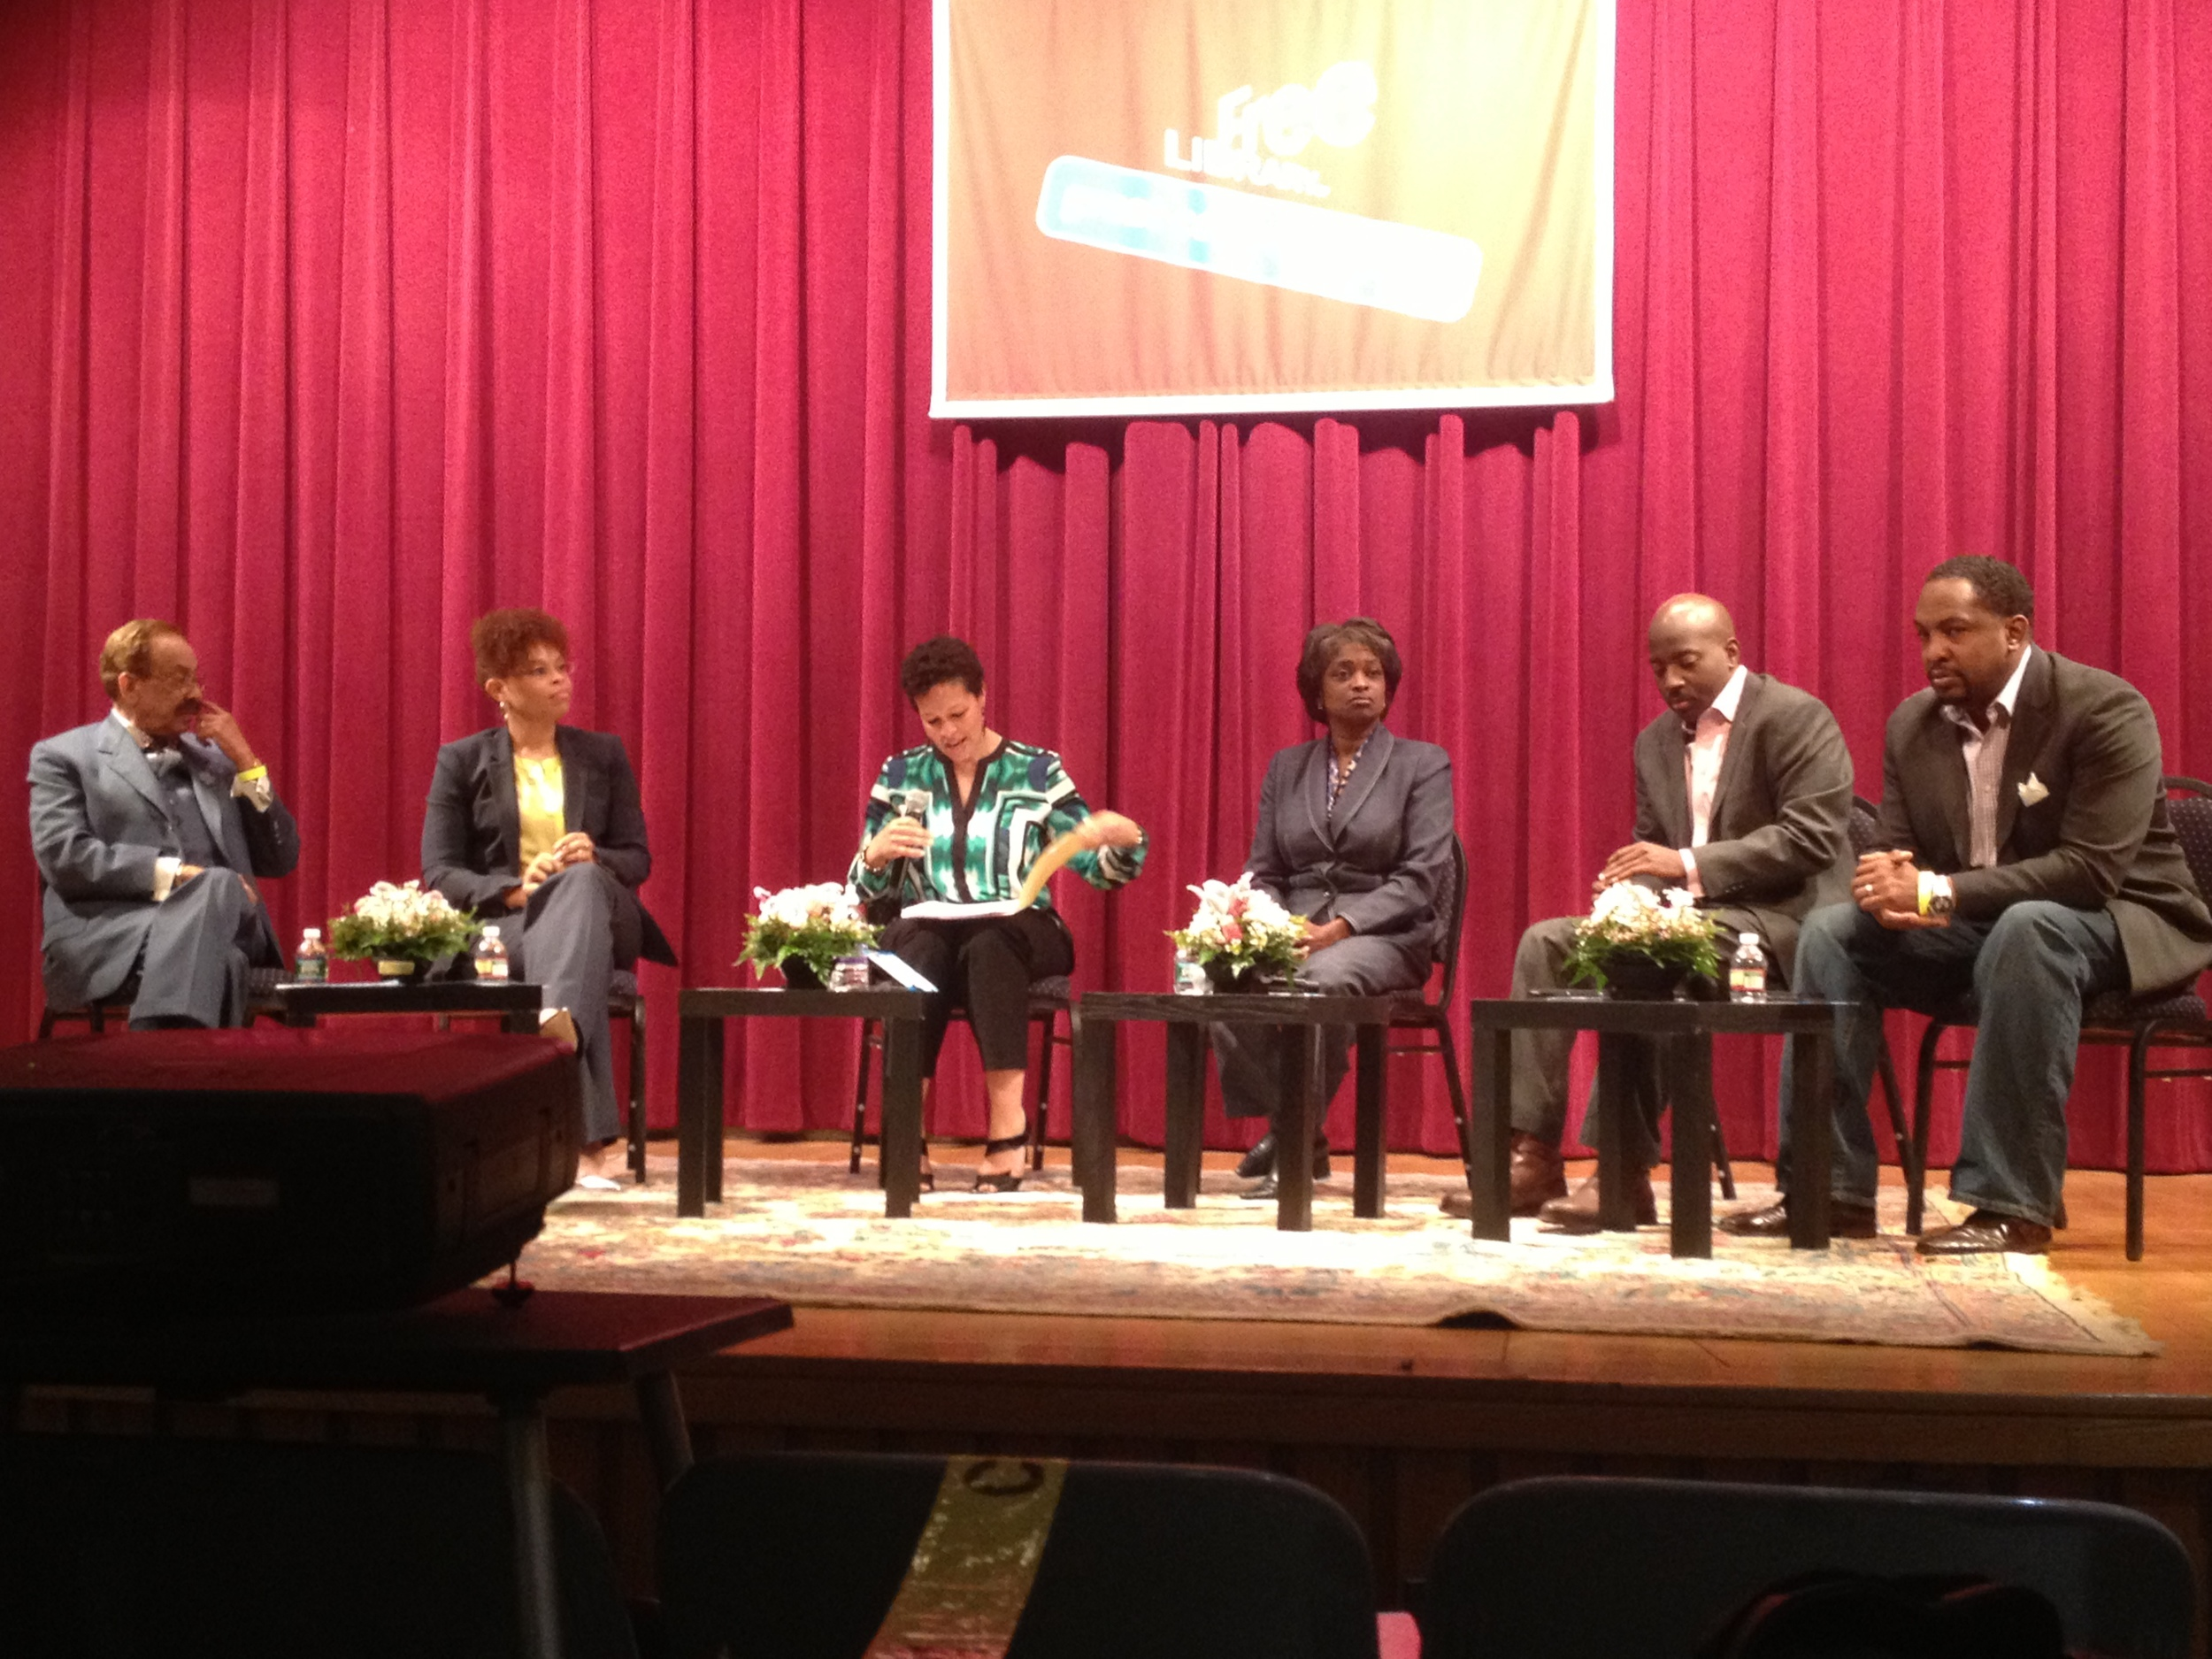 Panelist at the  WURD Speaks: Blackout event in Philadelphia . From L-R - Robert W. Bogle, President & CEO of the Philadelphia Tribune; Brigitte Daniel, Executive Vice President of Wilco Electronic Systems; Sara Lomax-Reese, President & General Manager of 900AM-WURD; Mignon Clyburn, FCC Commissioner; William Crowder, Managing Director of DreamIt Ventures & Lead Advisor of the Comcast Ventures; Navarrow Wright, CTO Interactive One